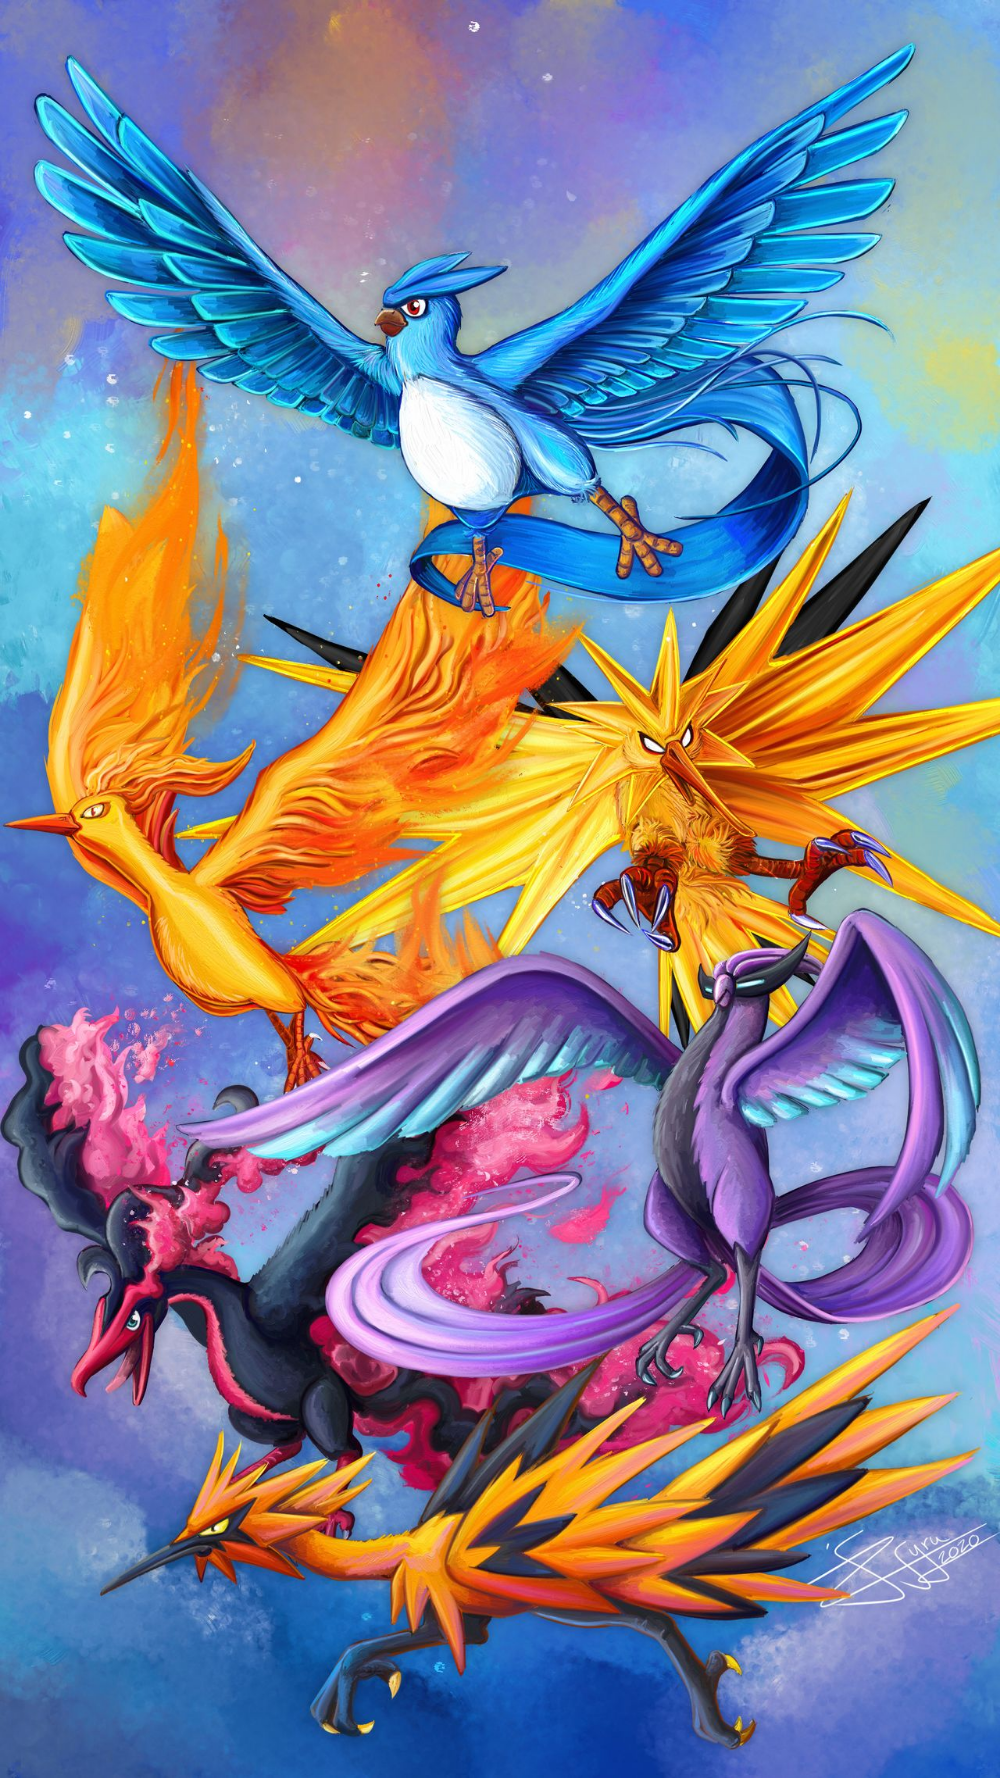 The Bird Of Kanto And Galar By Jyru On Deviantart In 2020 Zapdos Pokemon Cool Pokemon Wallpapers Pokemon